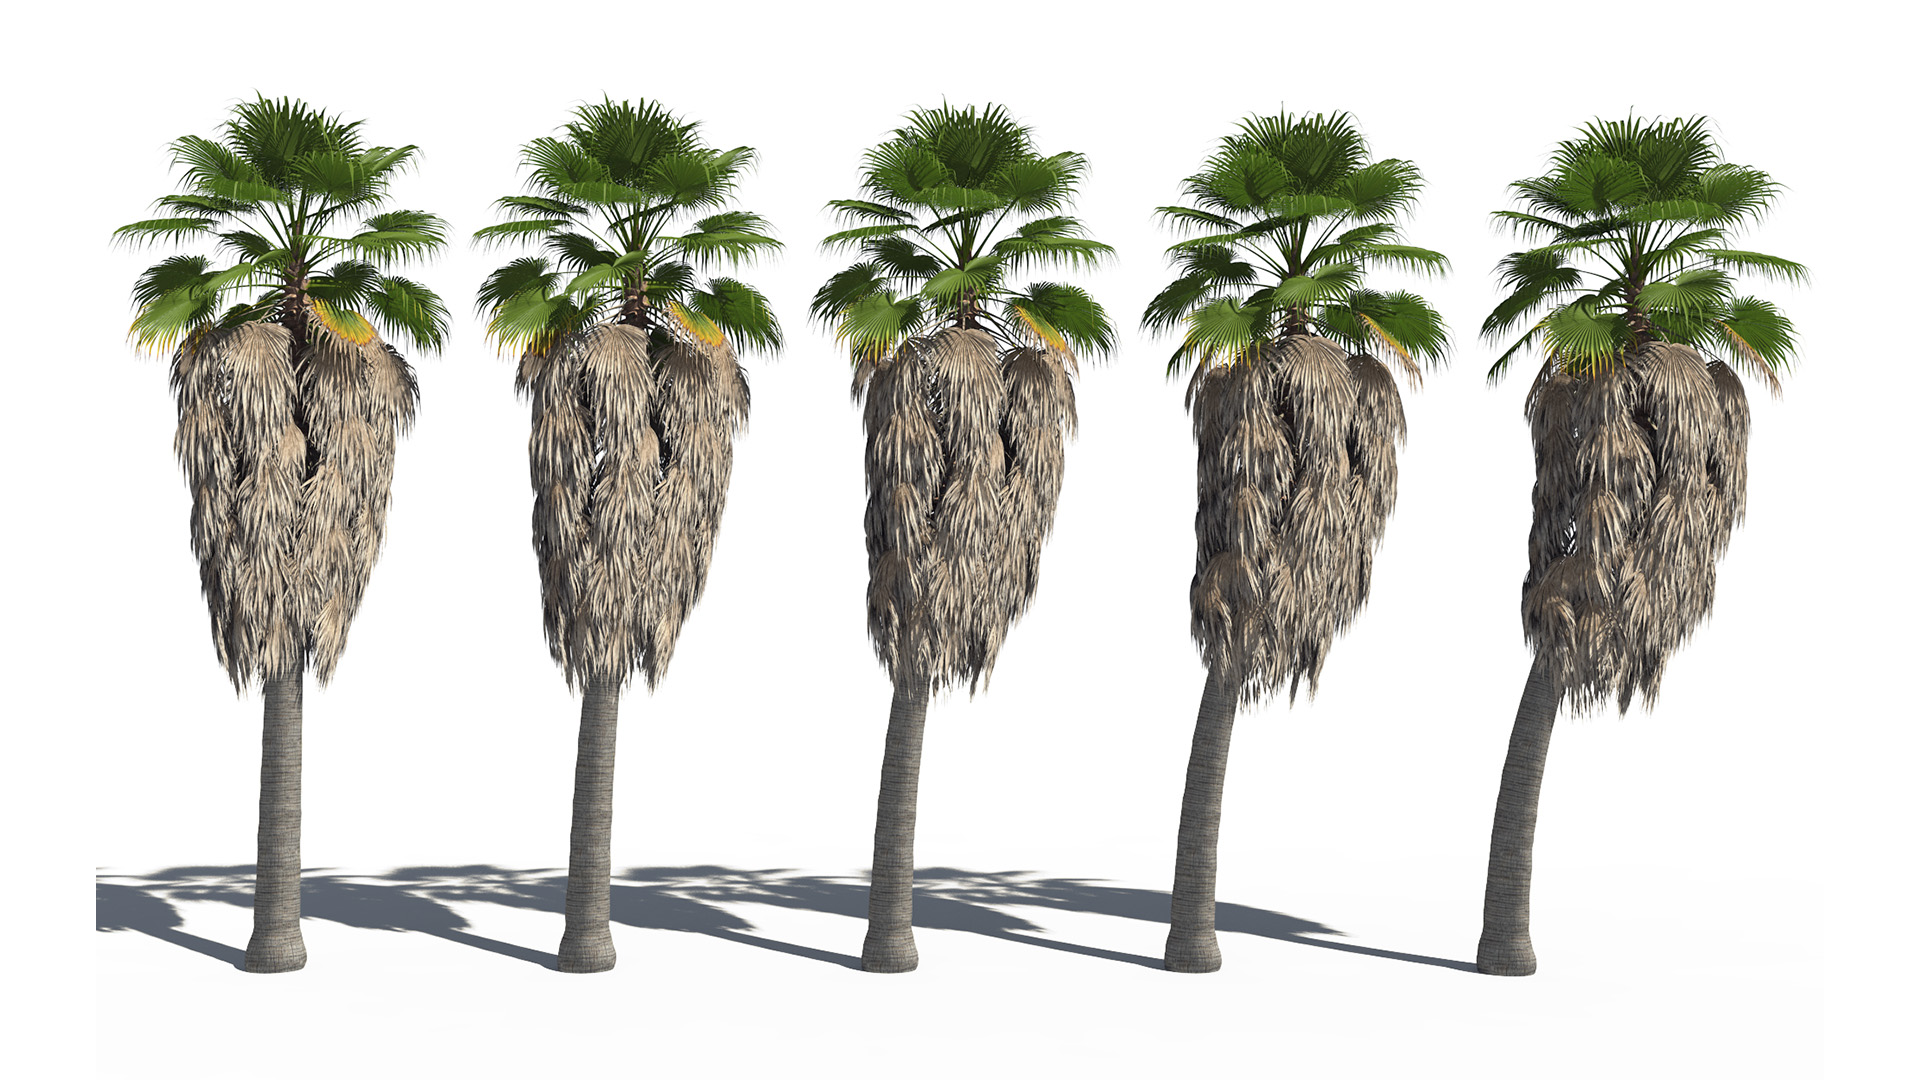 3D model of the California fan palm Washingtonia filifera